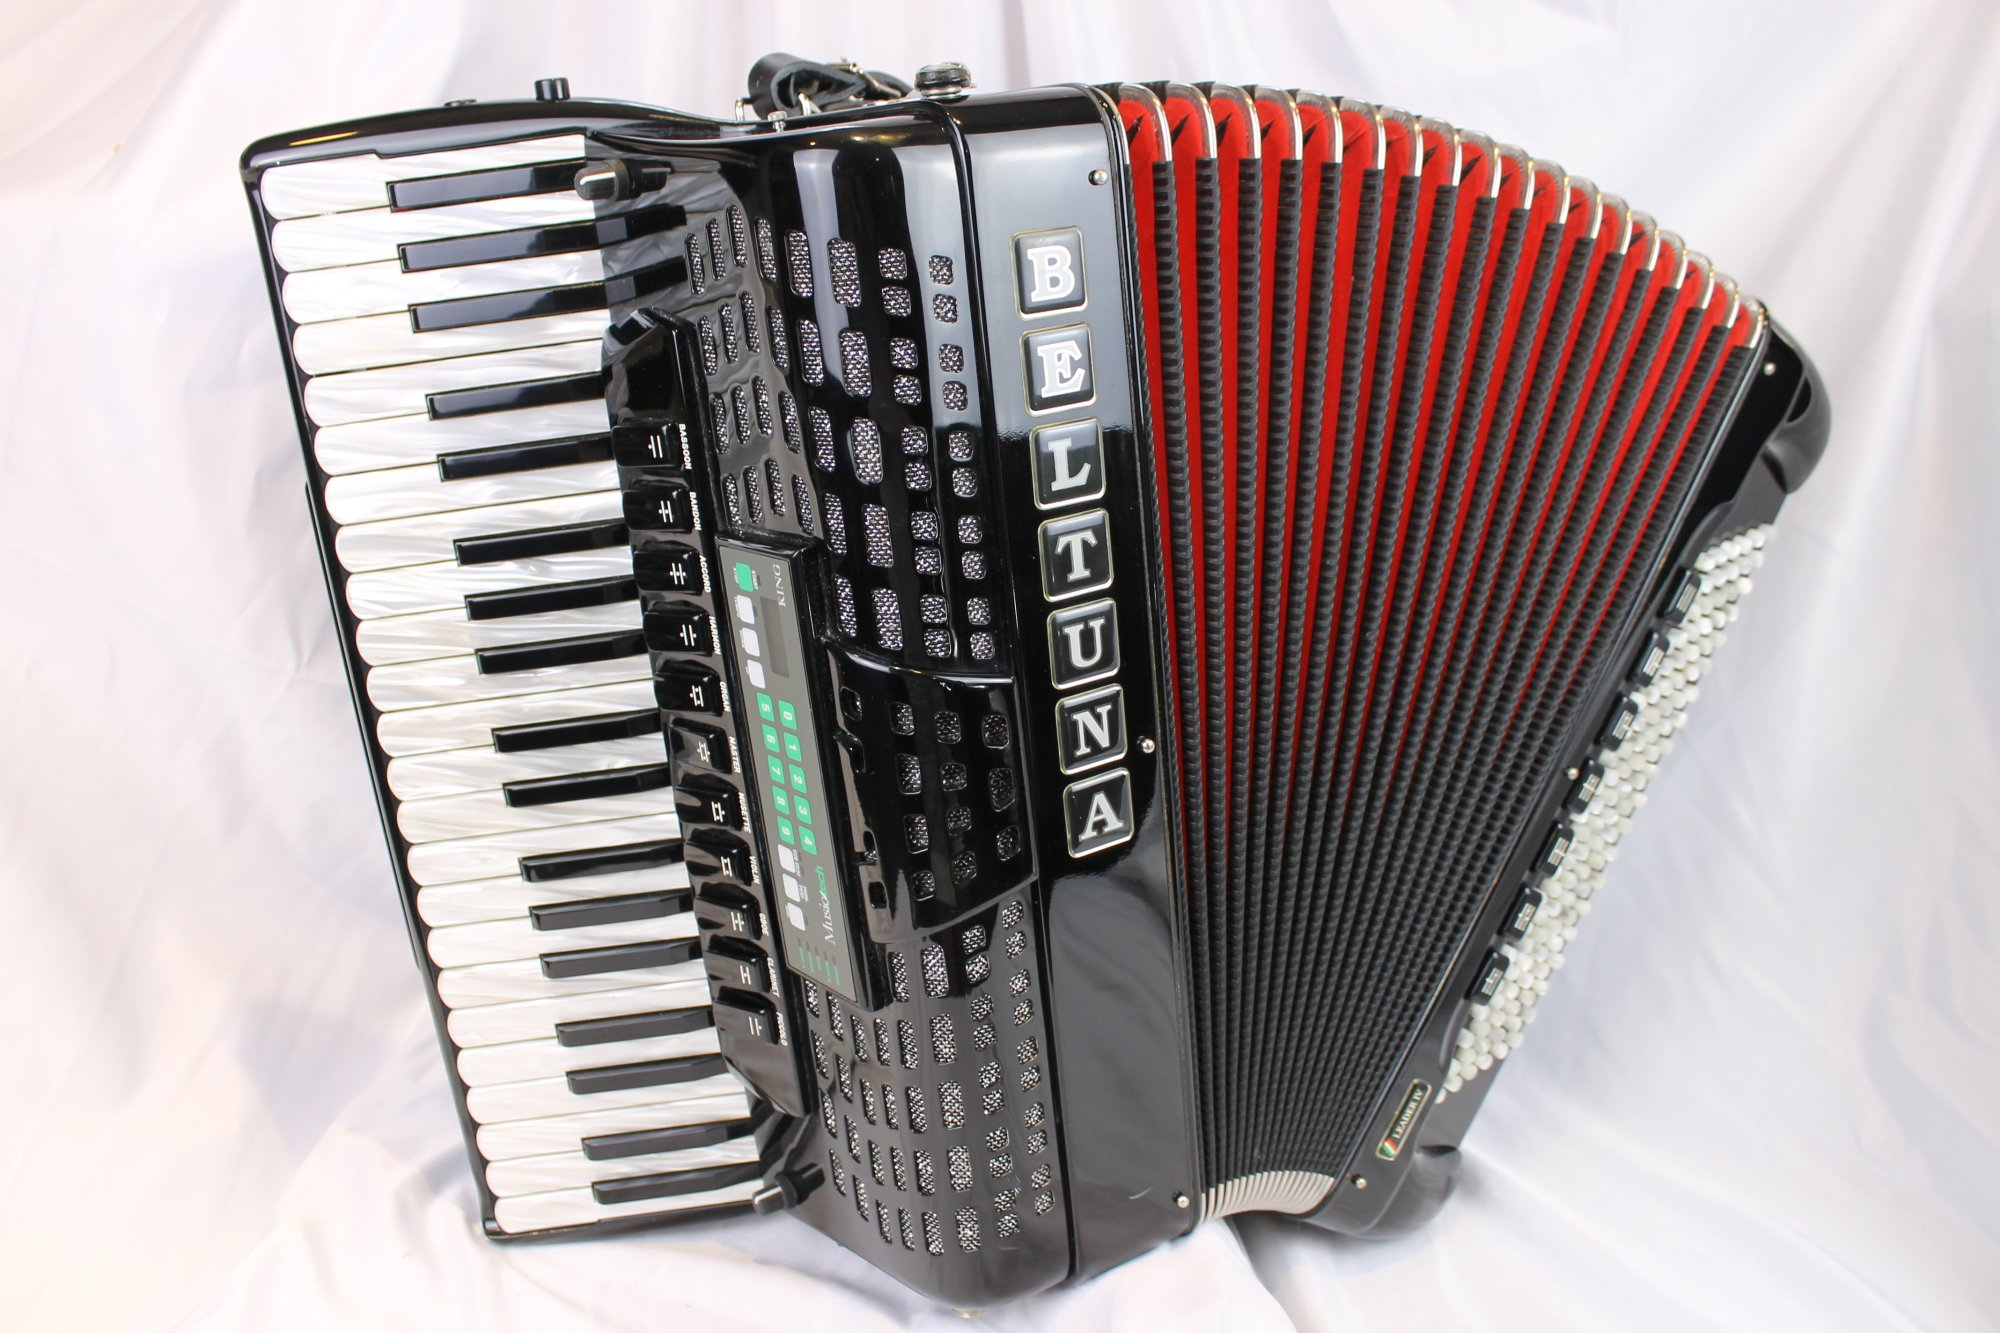 5016 - Black Beltuna Leader IV Piano Accordion LMMH 41 120 MusicTech MIDI